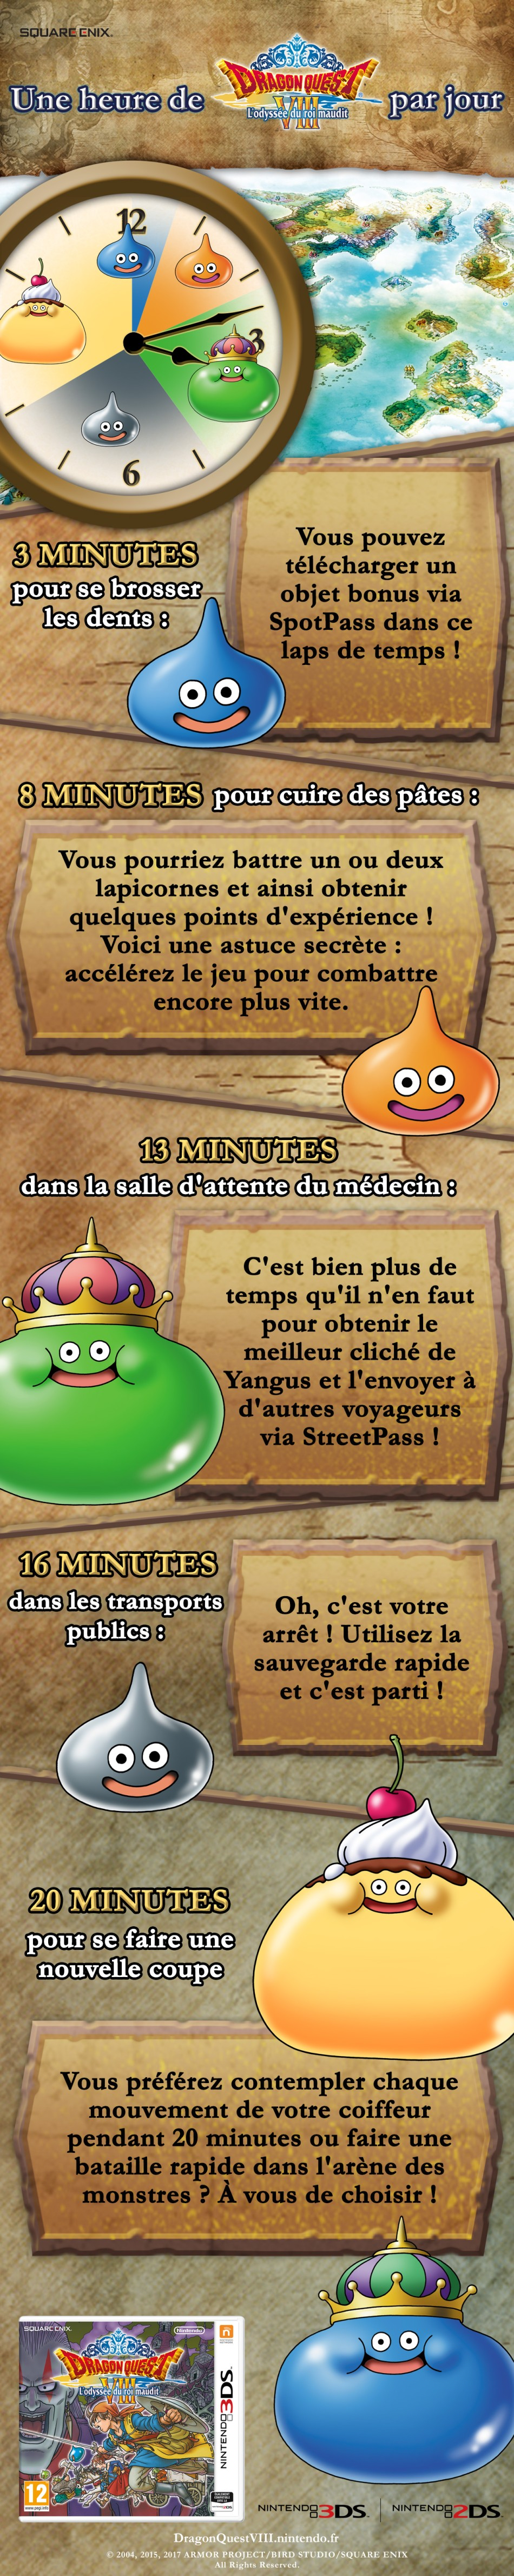 CI_DragonQuest_Infographic_AnHourADay_frFR.jpg